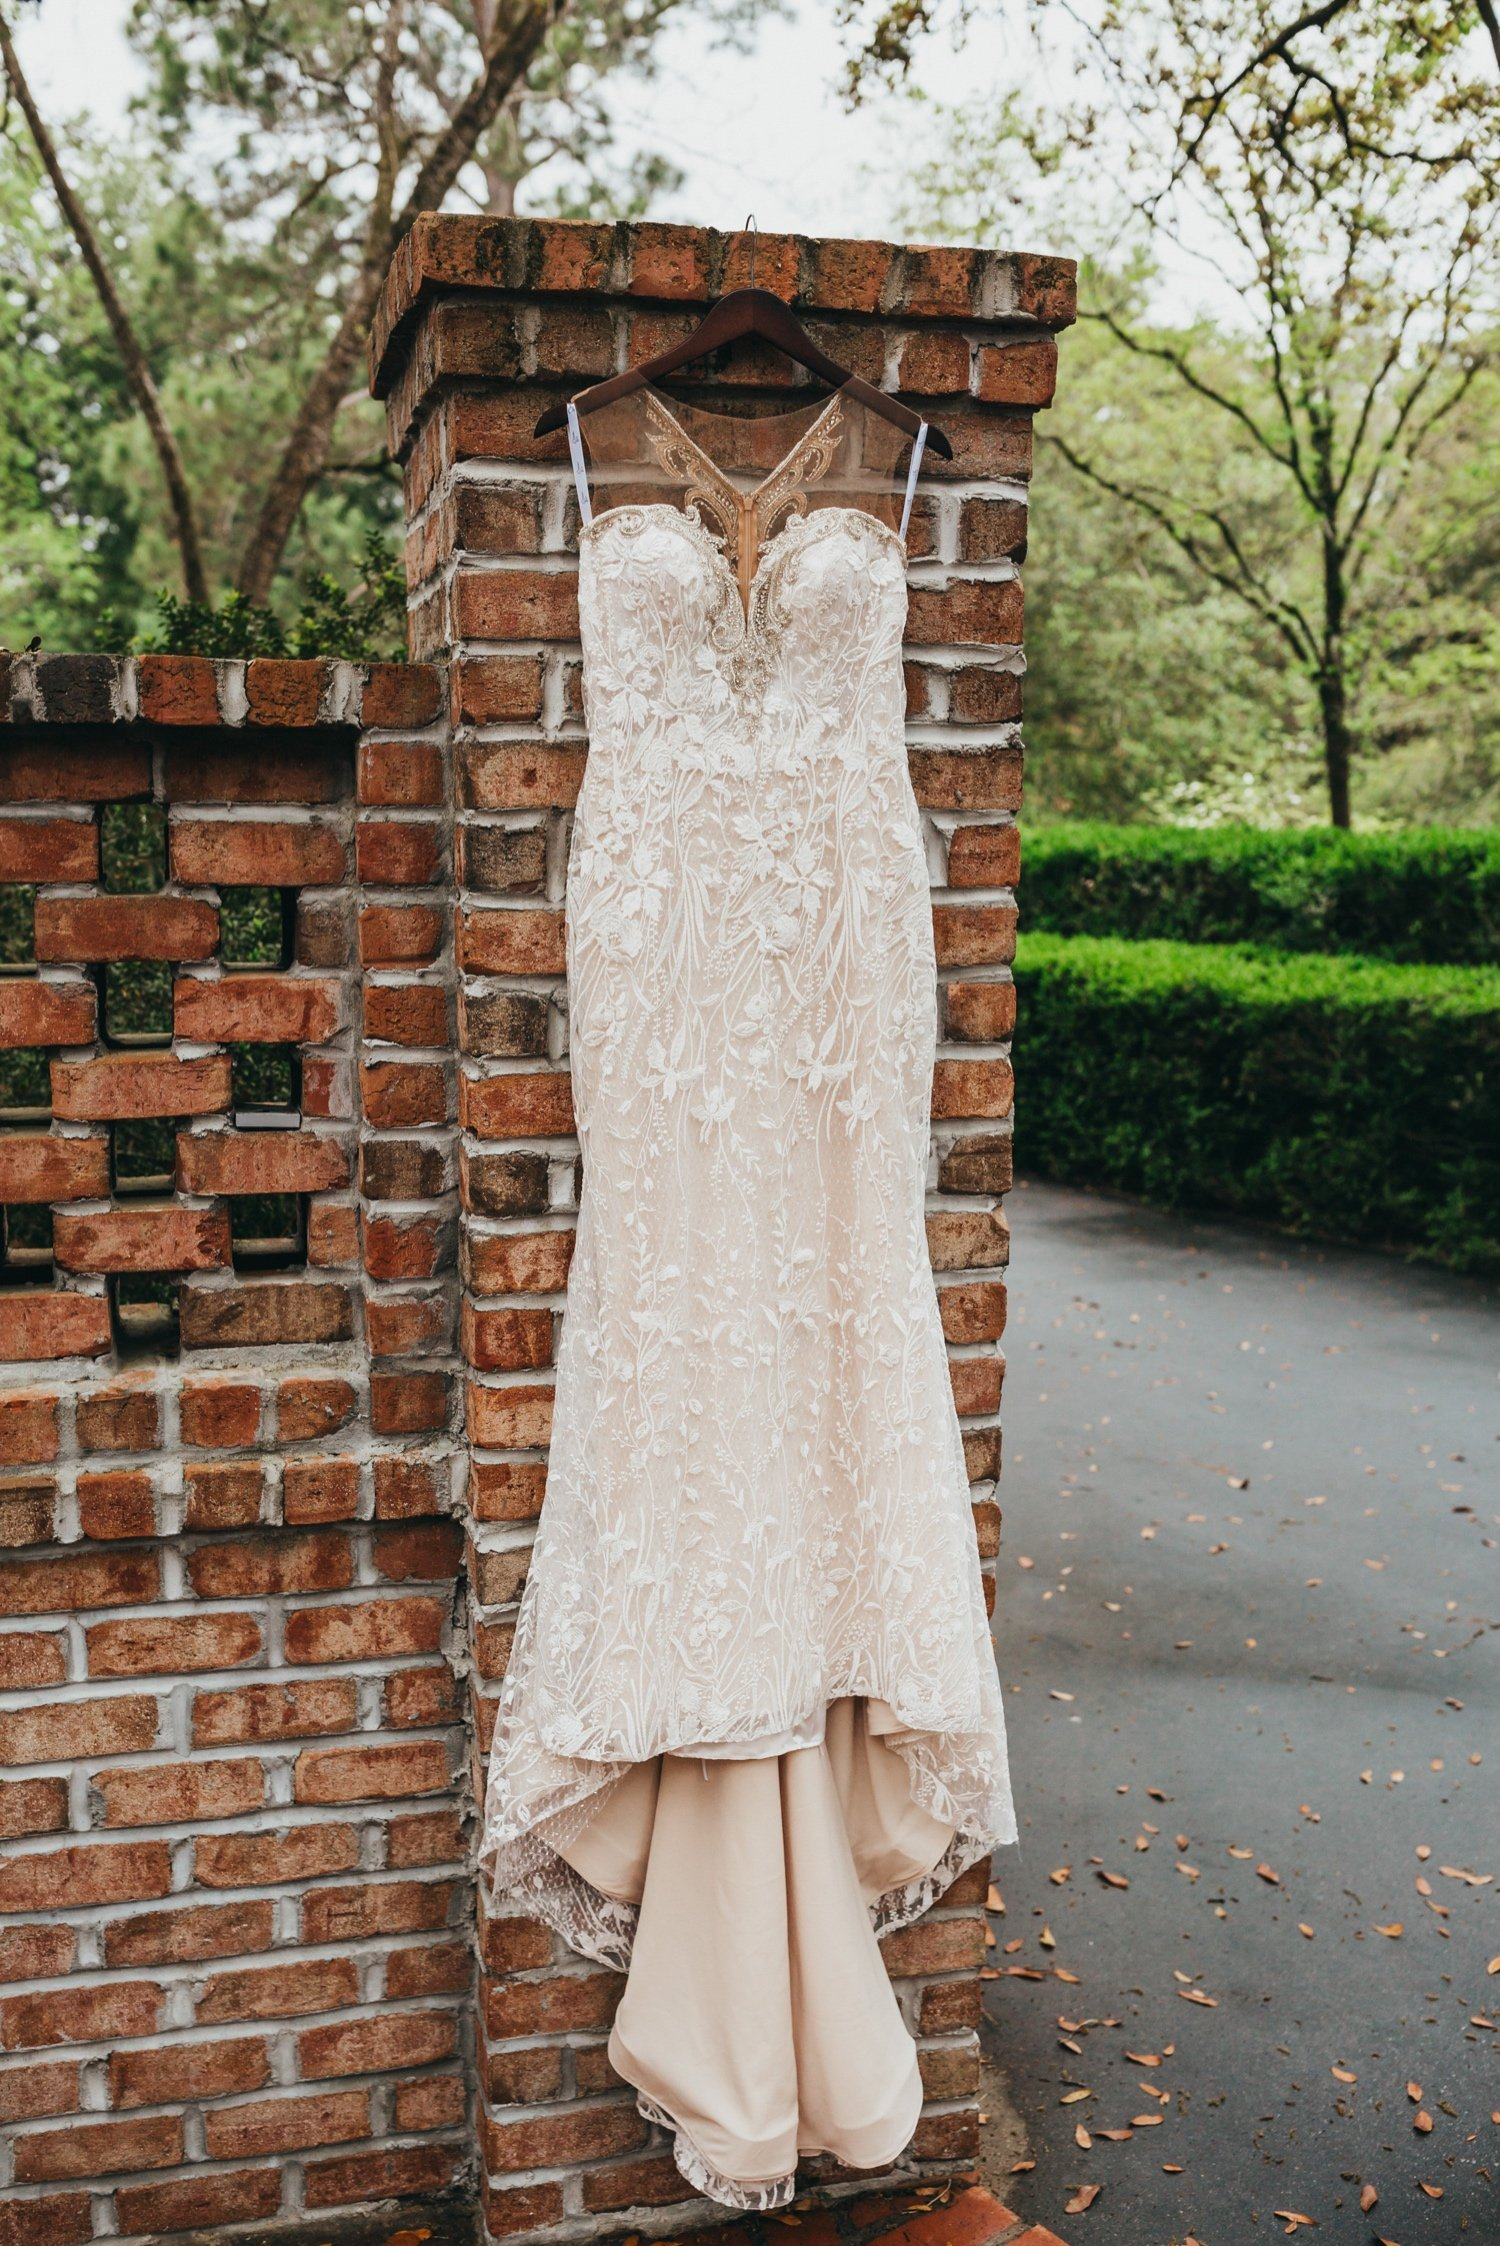 stunning off-white wedding dress hanging from a red brick column